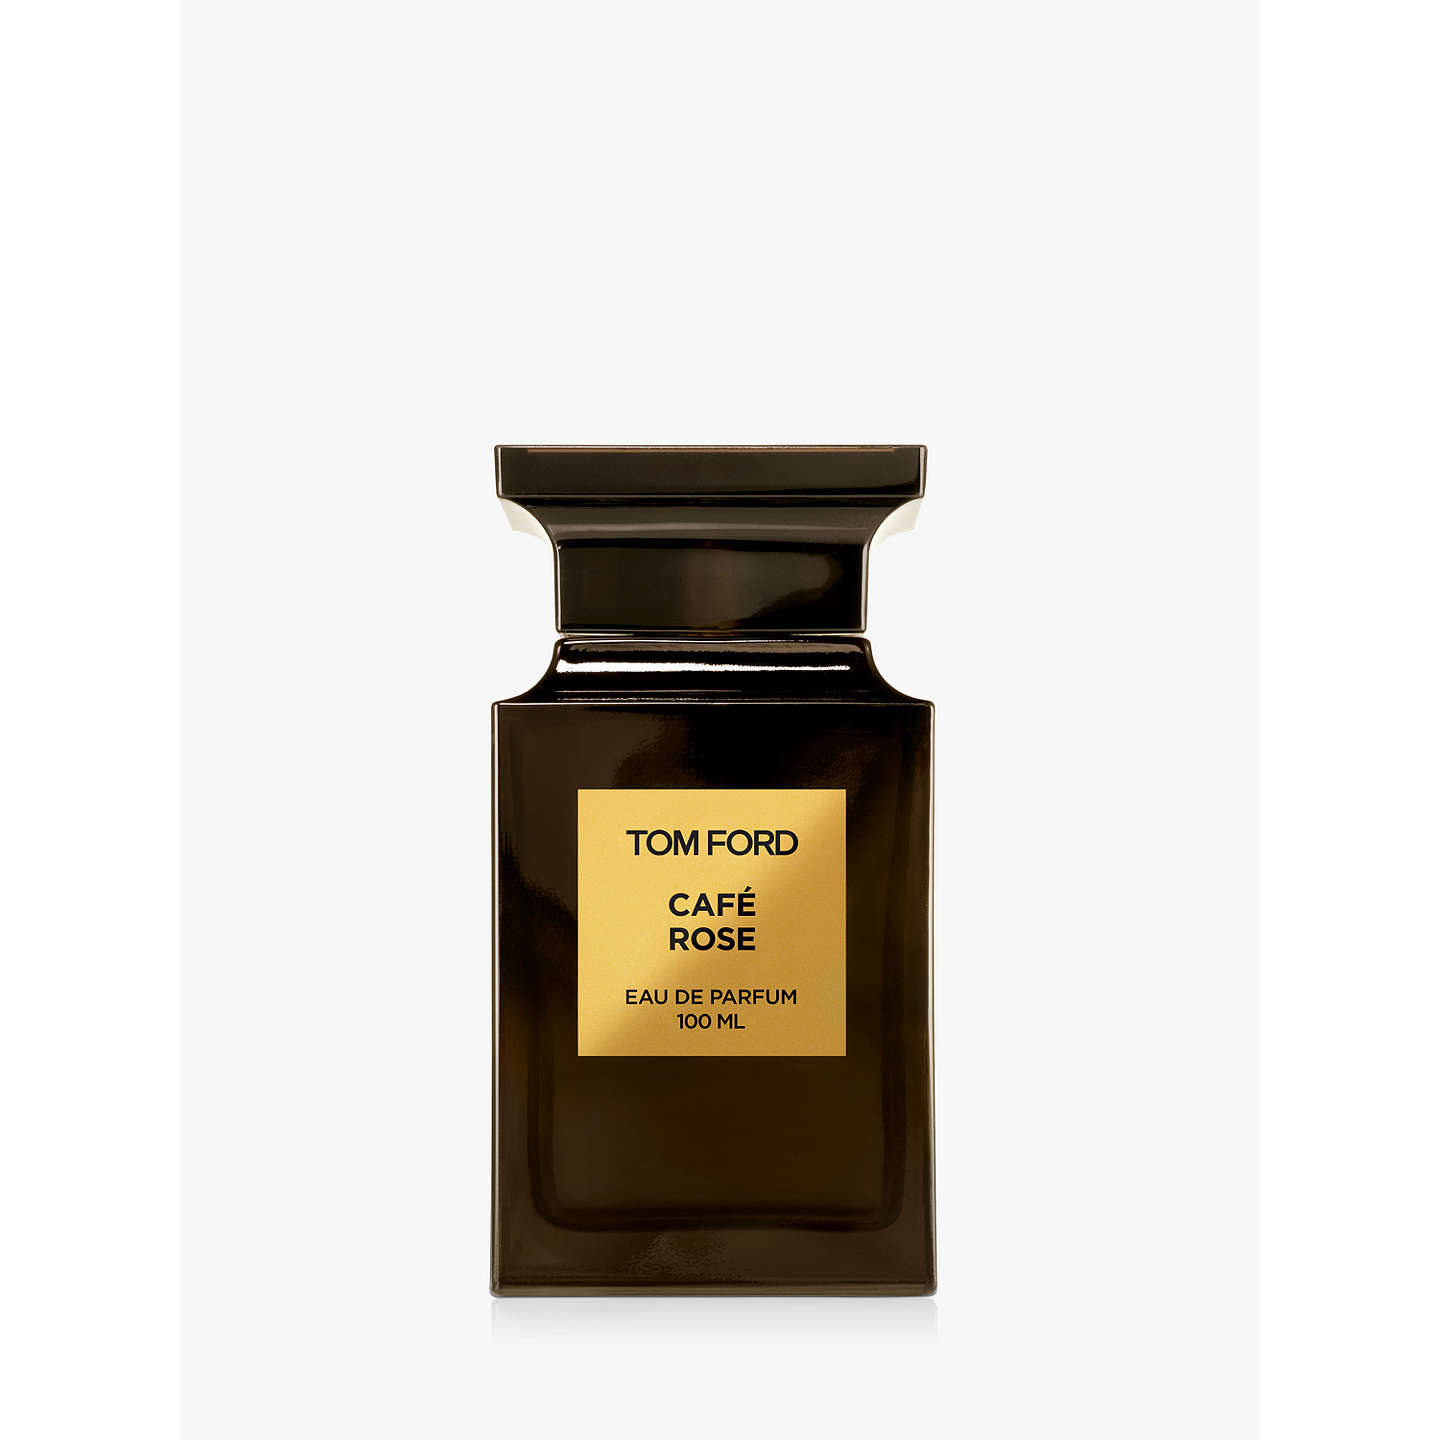 Tom Ford Cafe Rose Price